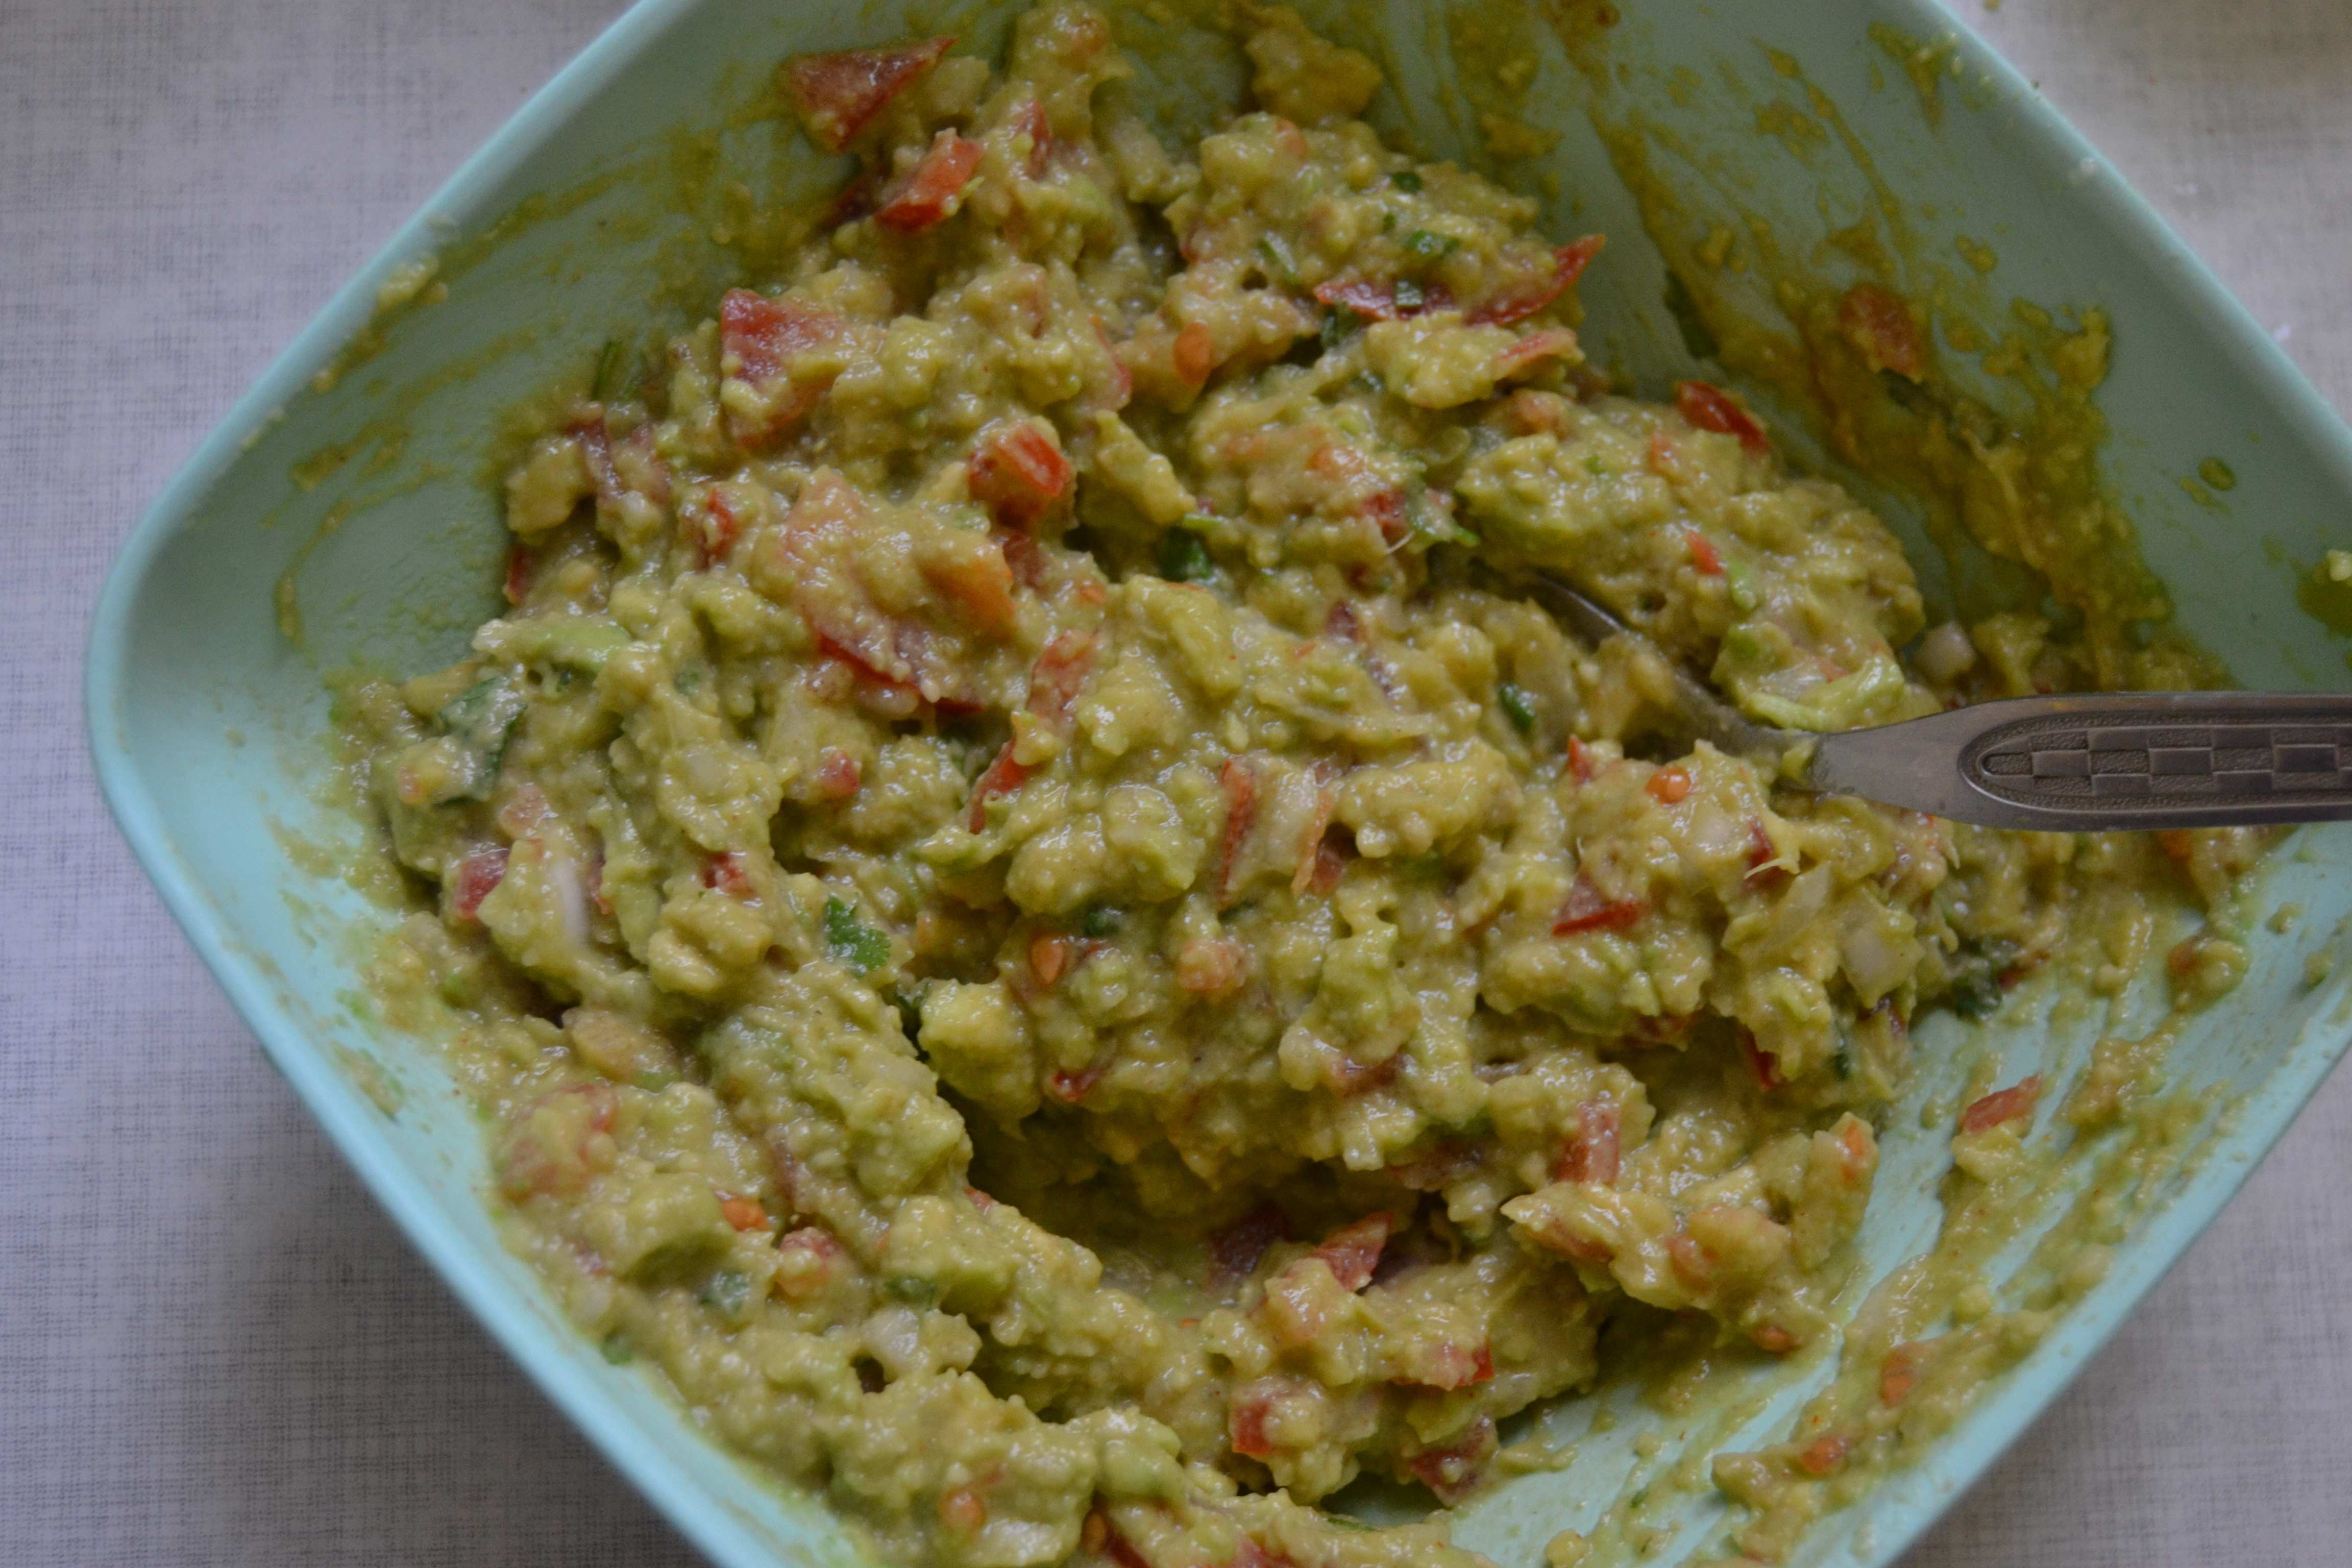 Picture of The Guacamole